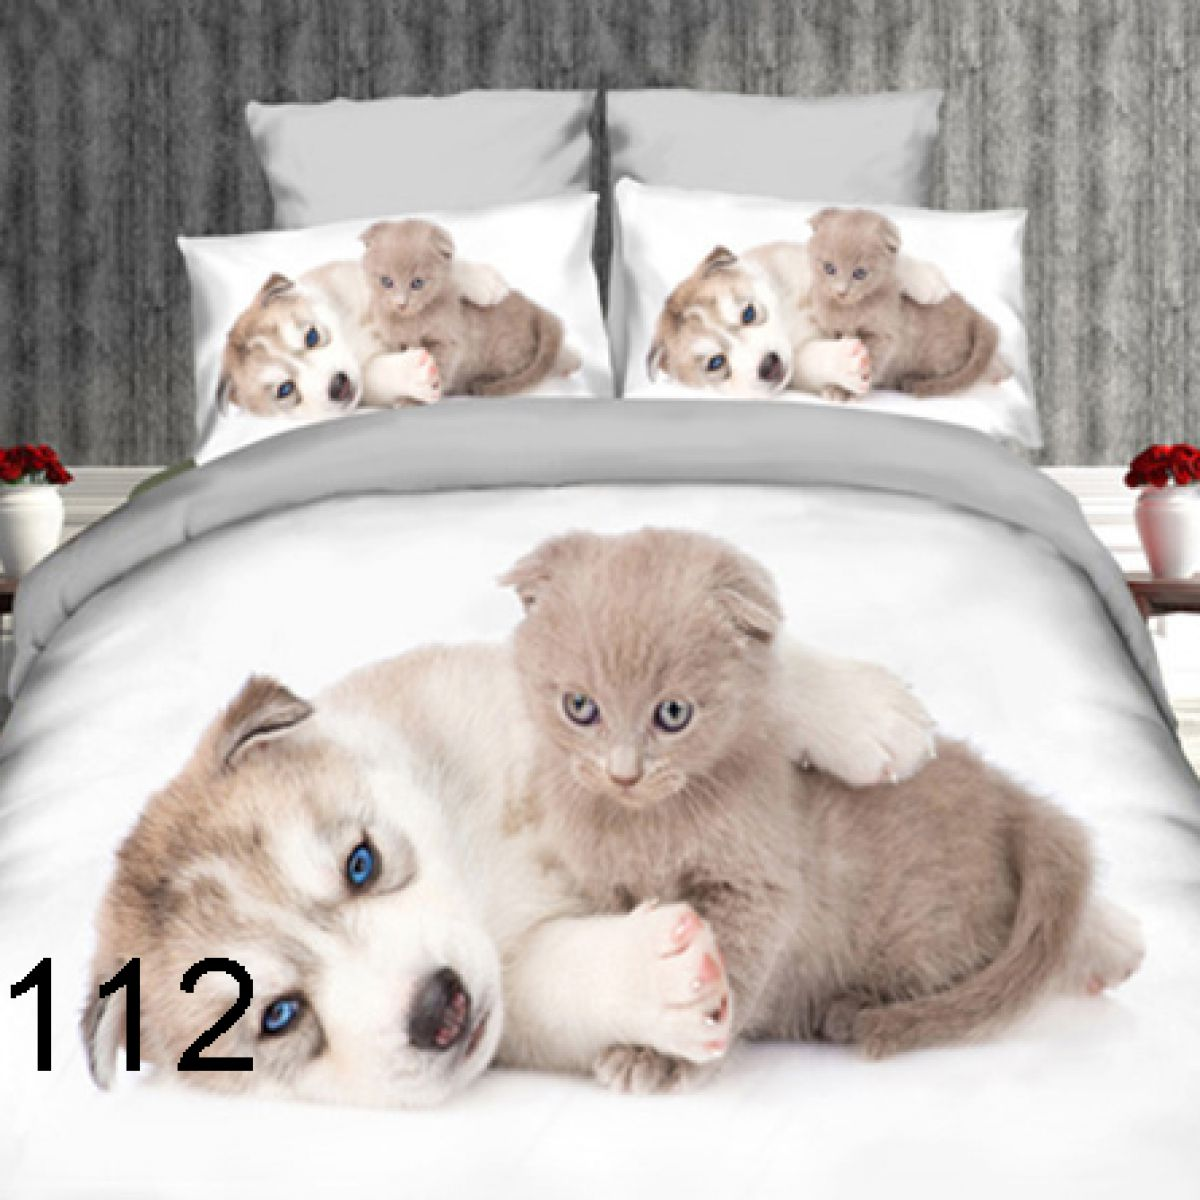 3D Beddings - Antonio - AML-112 - 160x200 cm - 4 pcs